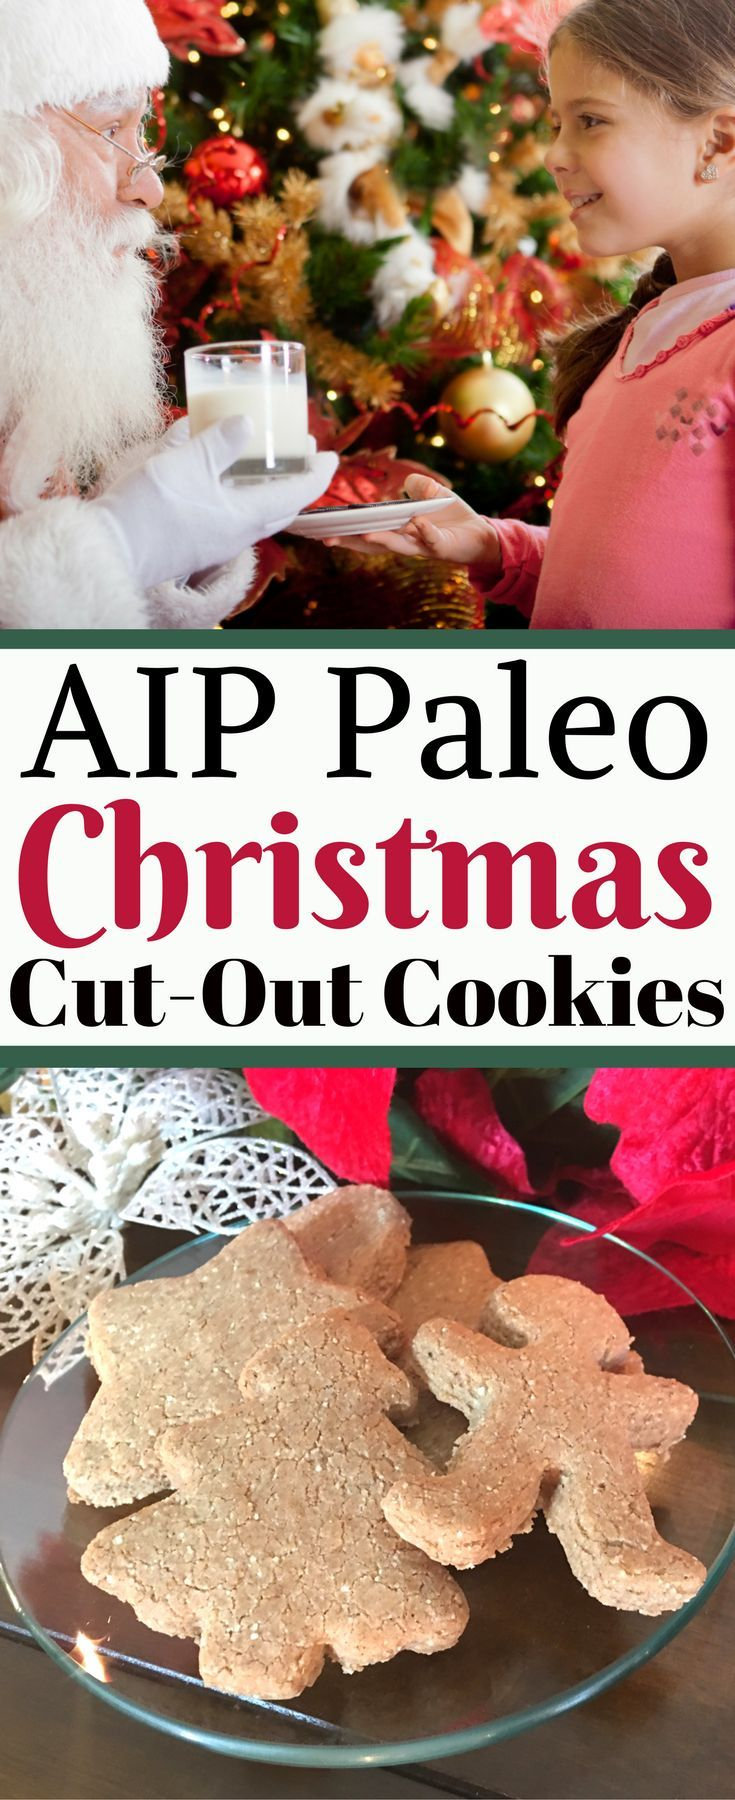 Autoimmune Paleo (AIP) approved Christmas Cut-Out Cookies are a great dessert to serve for family and holiday gatherings this winter, especially when you're unsure of food allergies at your gathering or party. It's a real treat that will be enjoyed by even the pickiest of eaters! This AIP cookie recipe is also Paleo, gluten-free, dairy-free, egg-free, soy-free, and refined sugar-free. via @thearomamamaStephanie @ Aroma Mama | Health & Wellness  | Essential Oils  | Paleo AIP |  Healthy Reviews